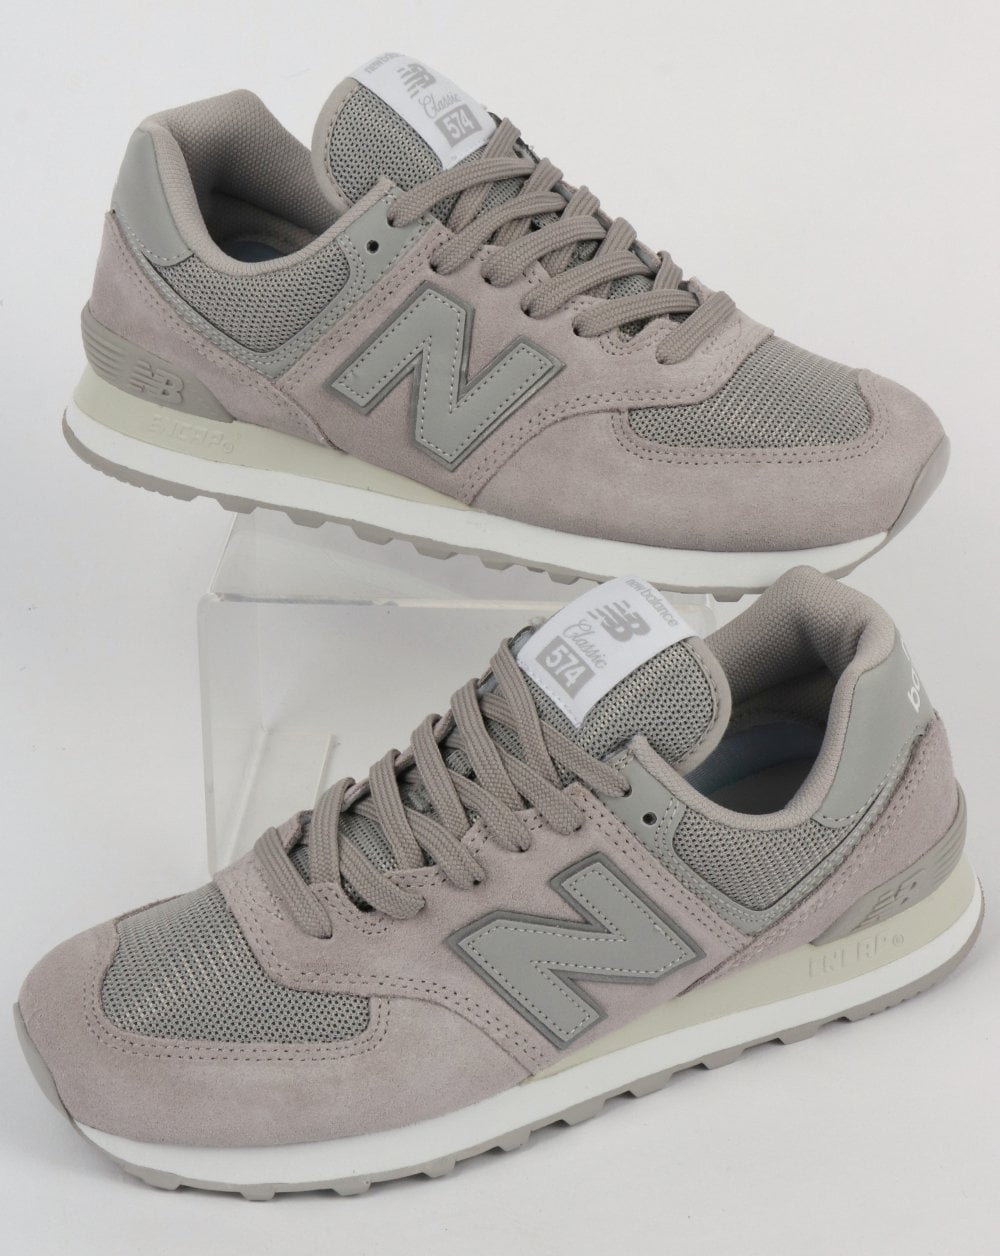 official photos 28995 4b7ab New Balance 574 Trainers Rain Cloud